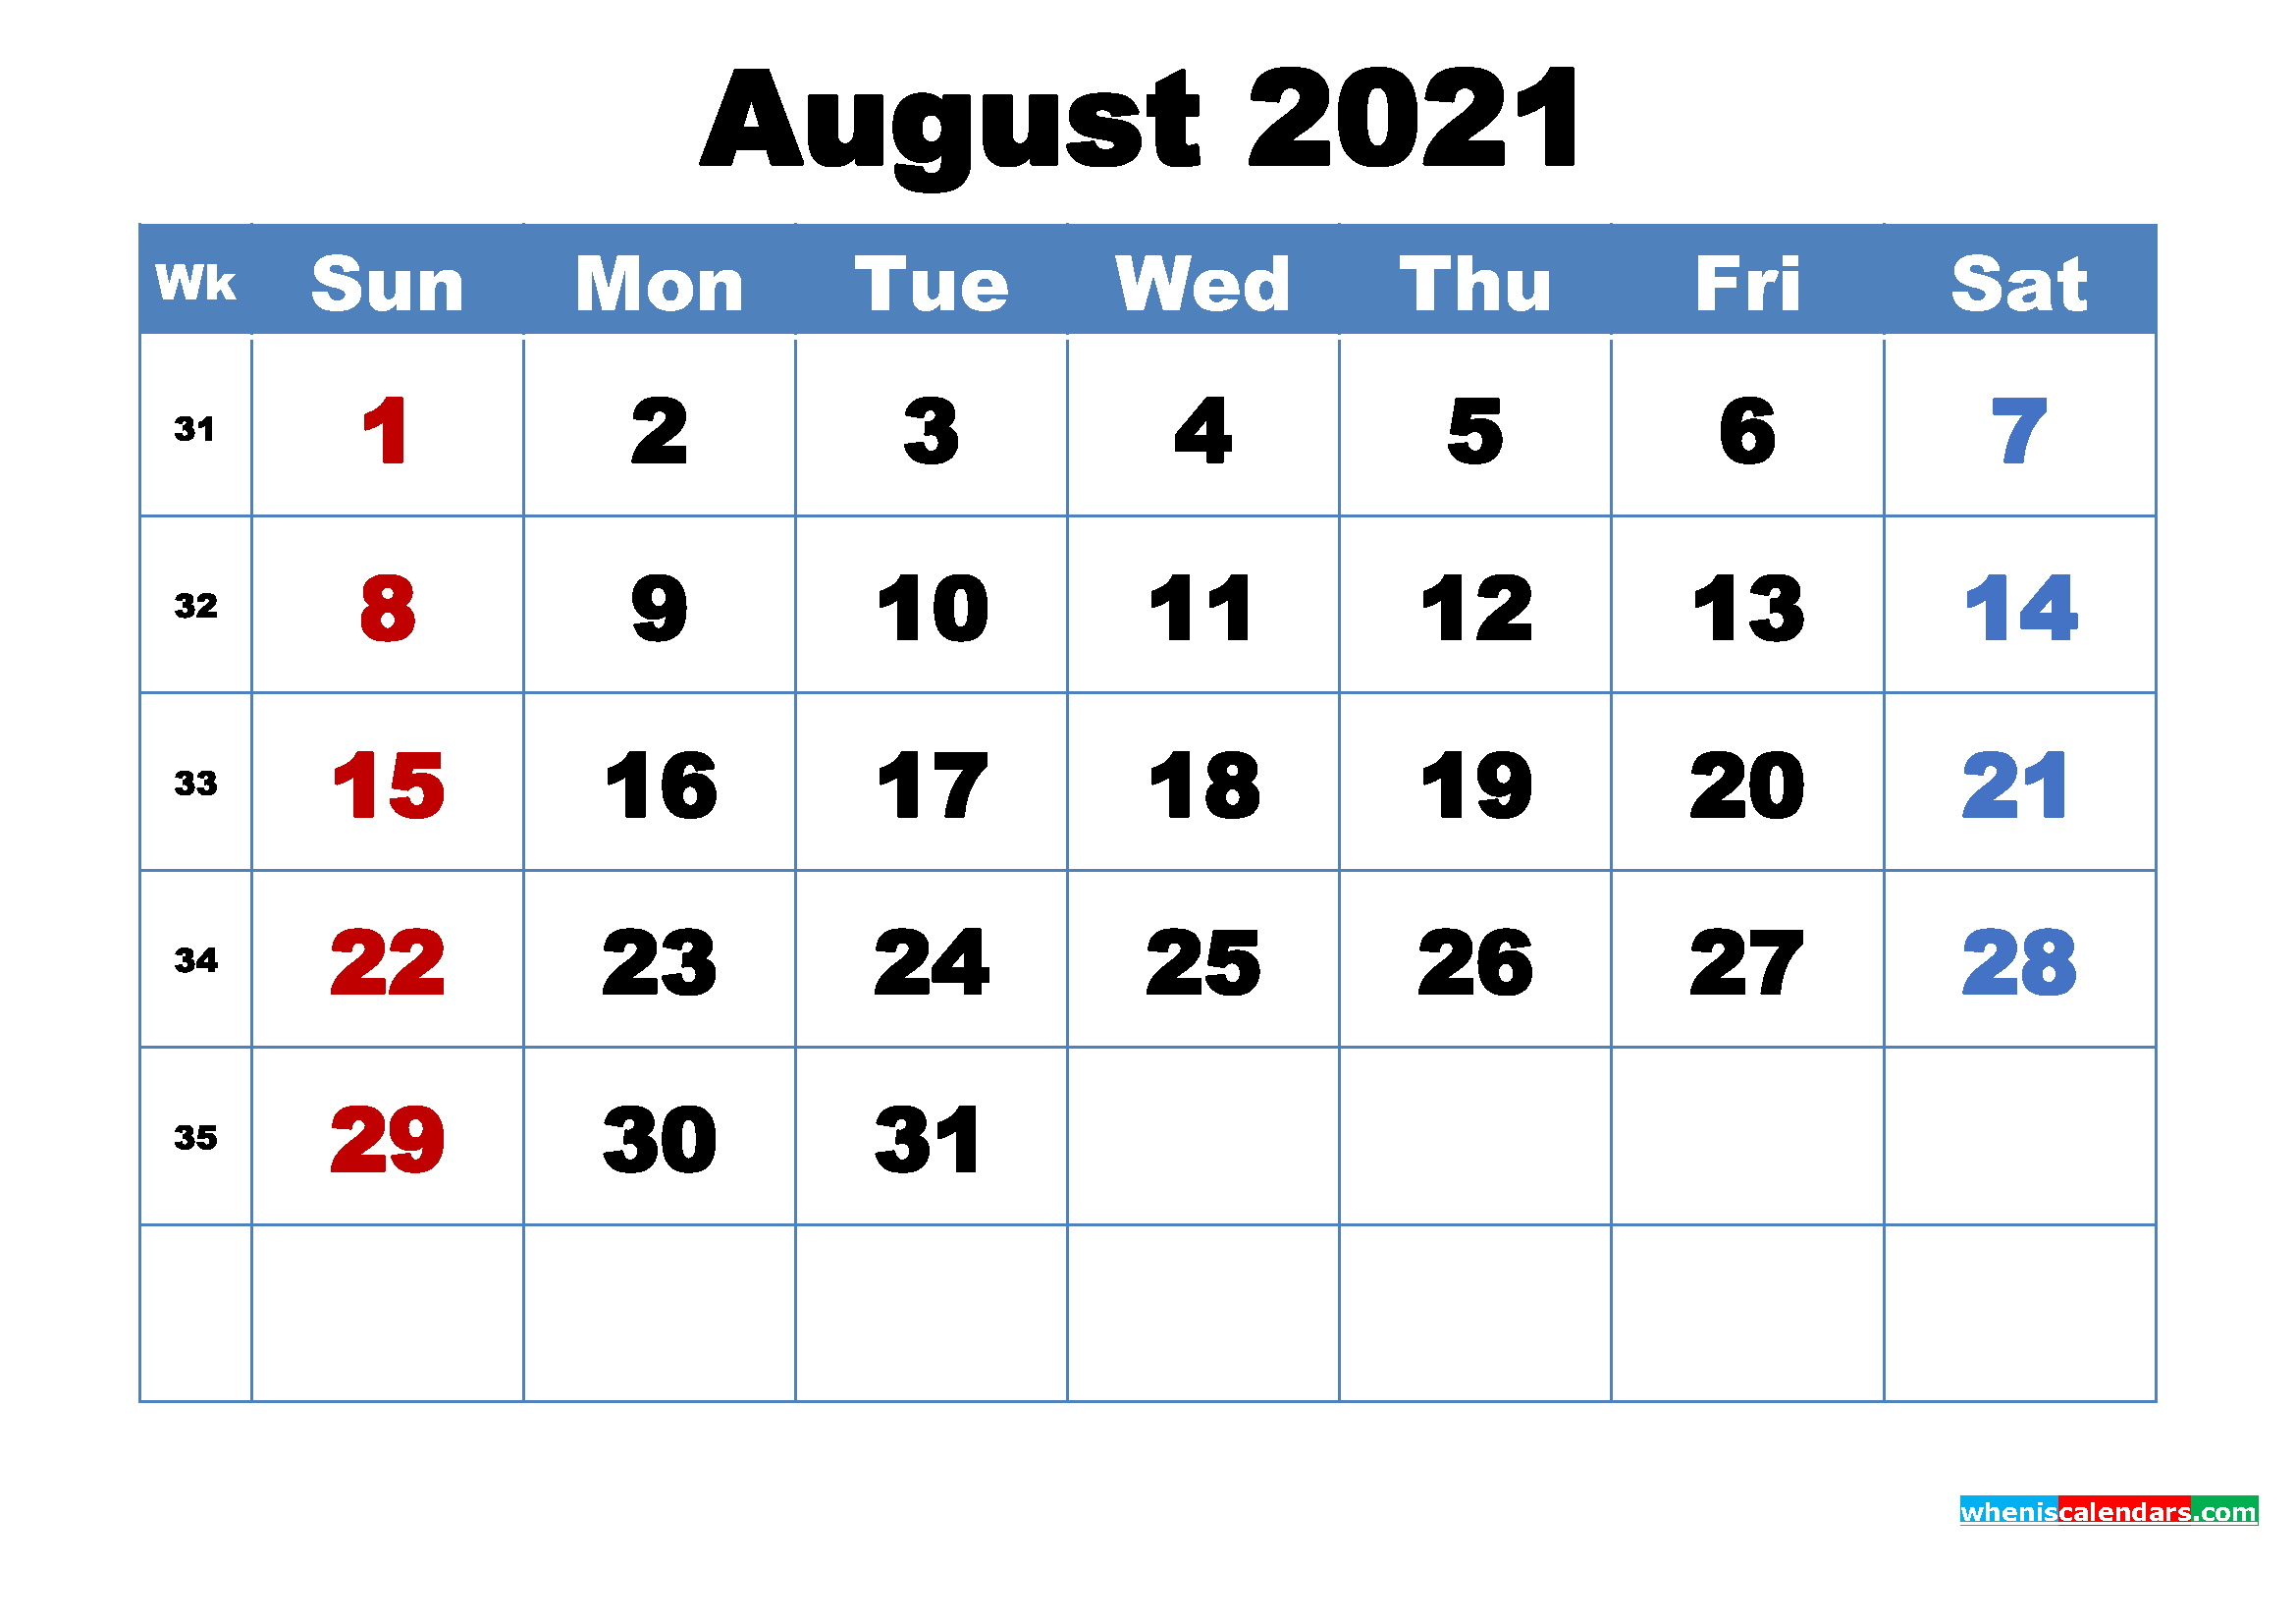 August 2021 Desktop Calendar Free Download